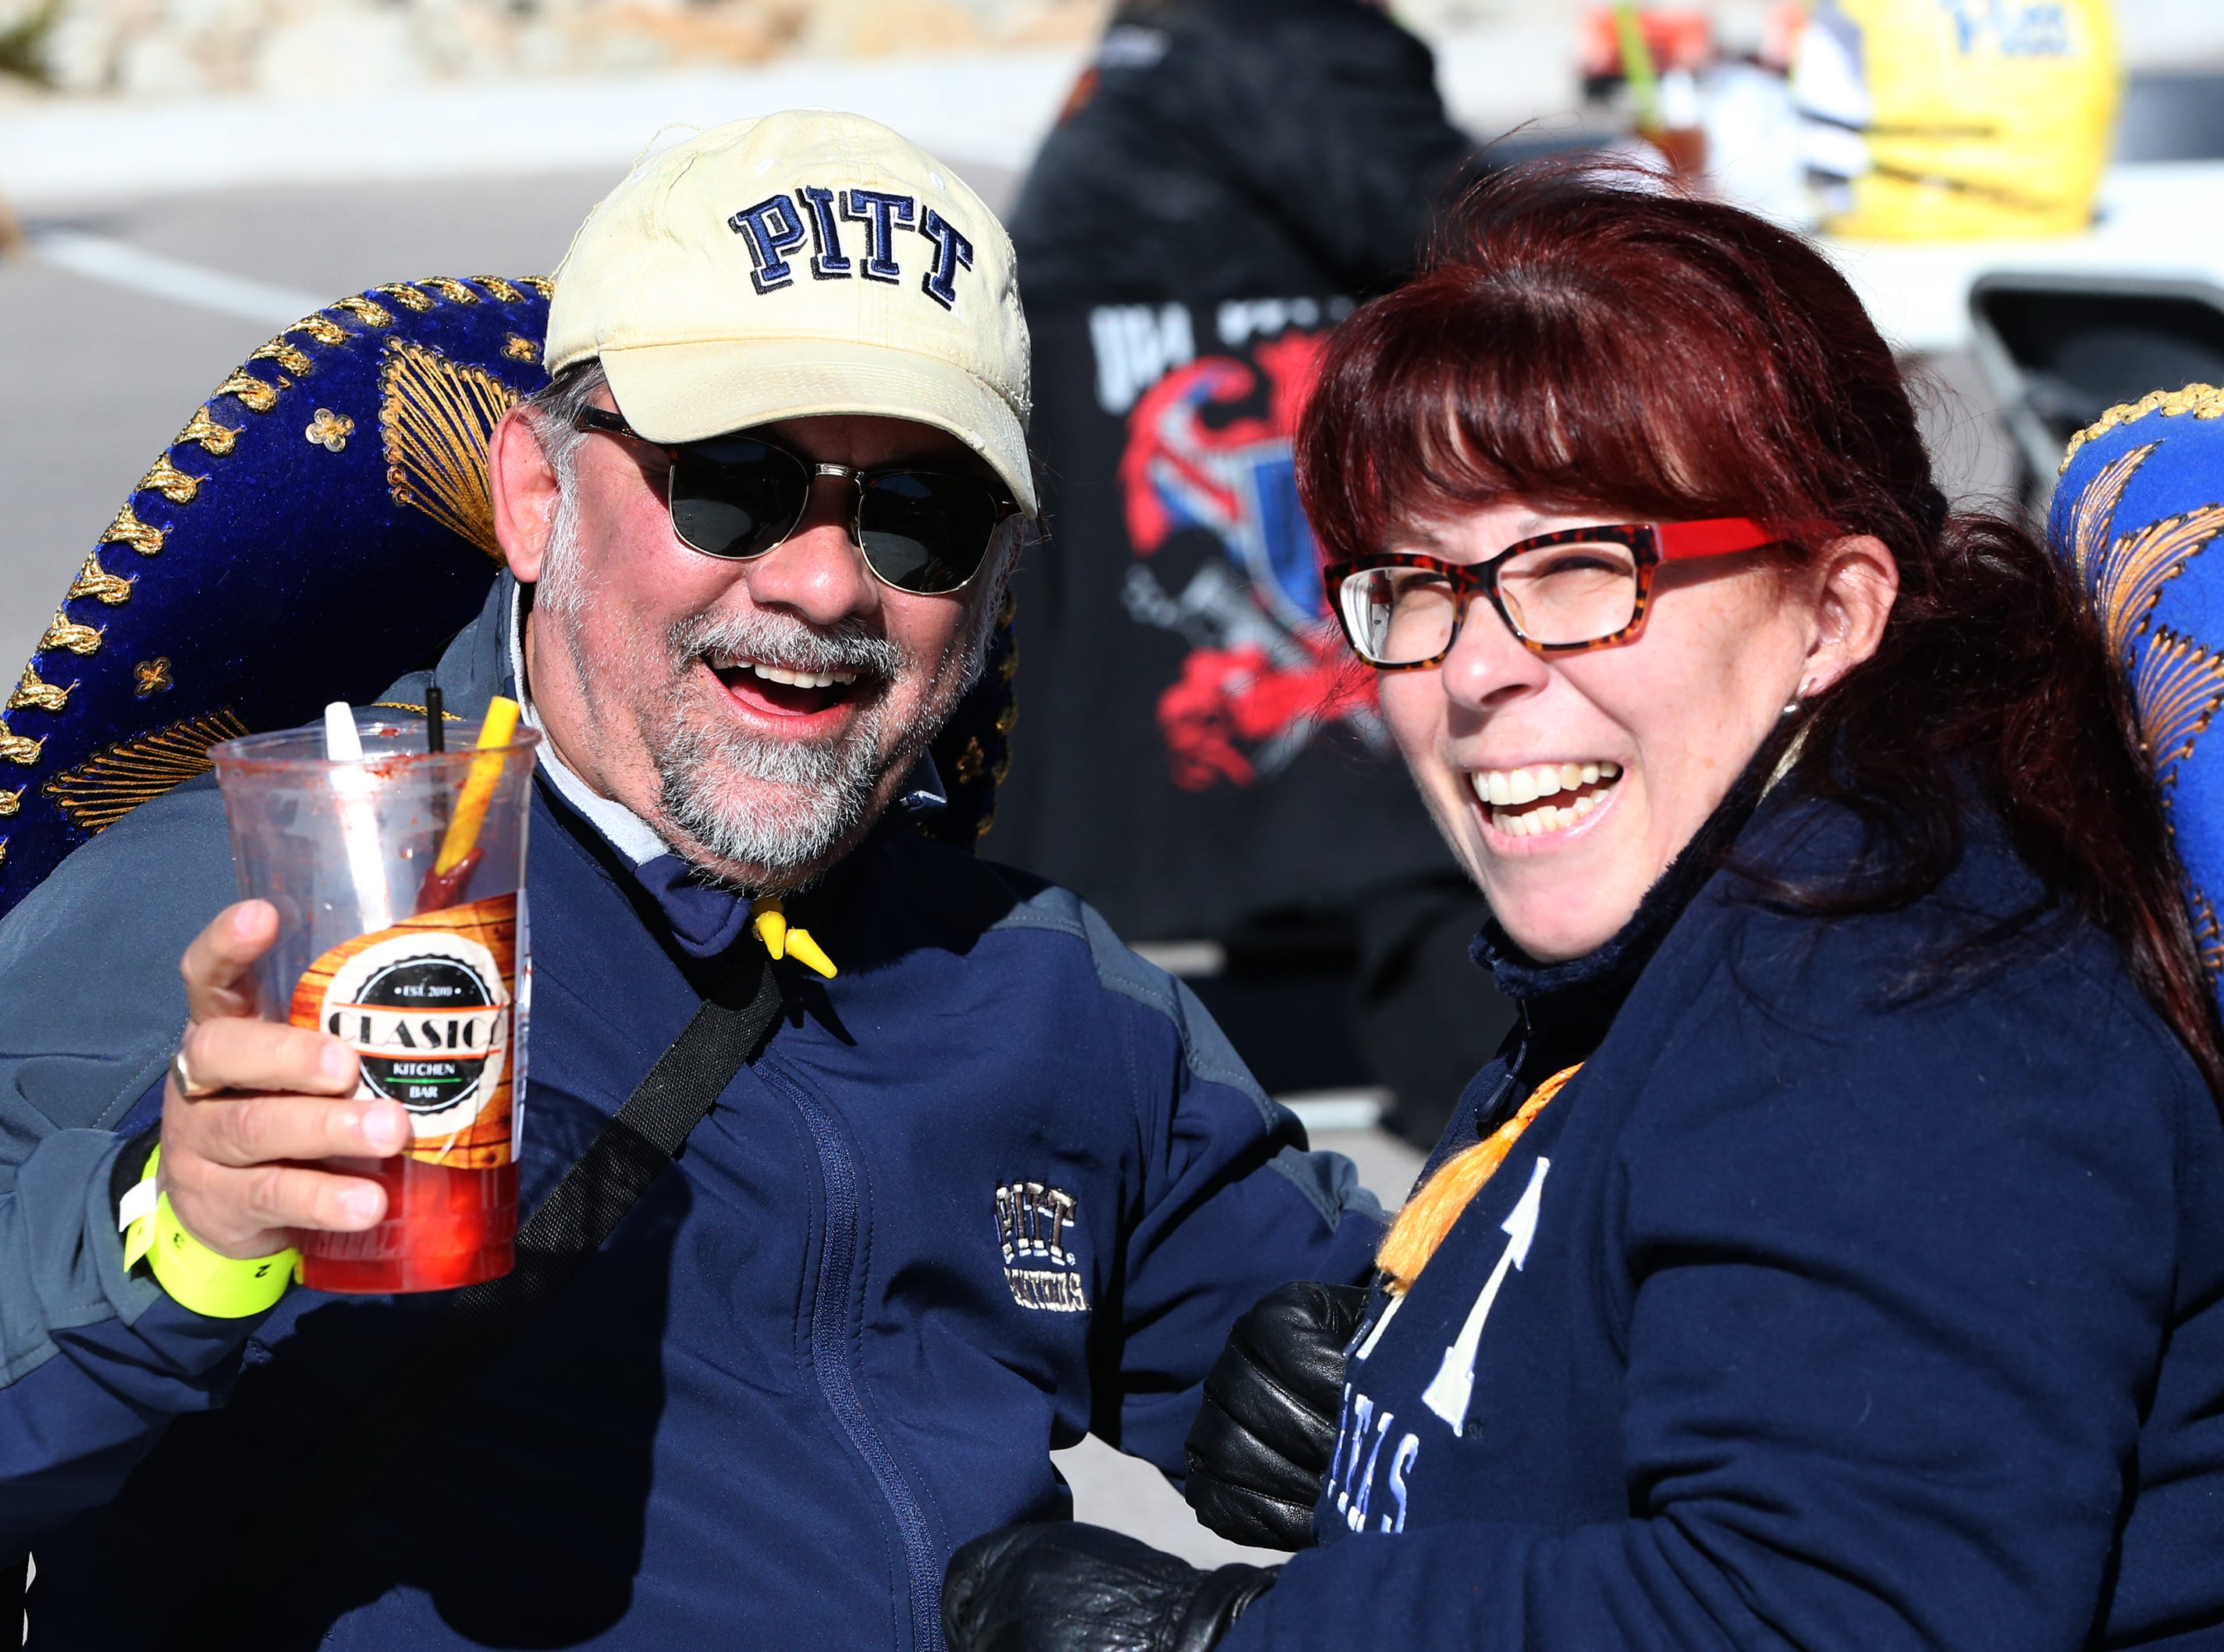 Rolando and Mimi Flores of Albuquerque enjoy drinks at a pre-game tailgate in the North end of the Sun Bowl Monday. Rolando is a Pitt alum.